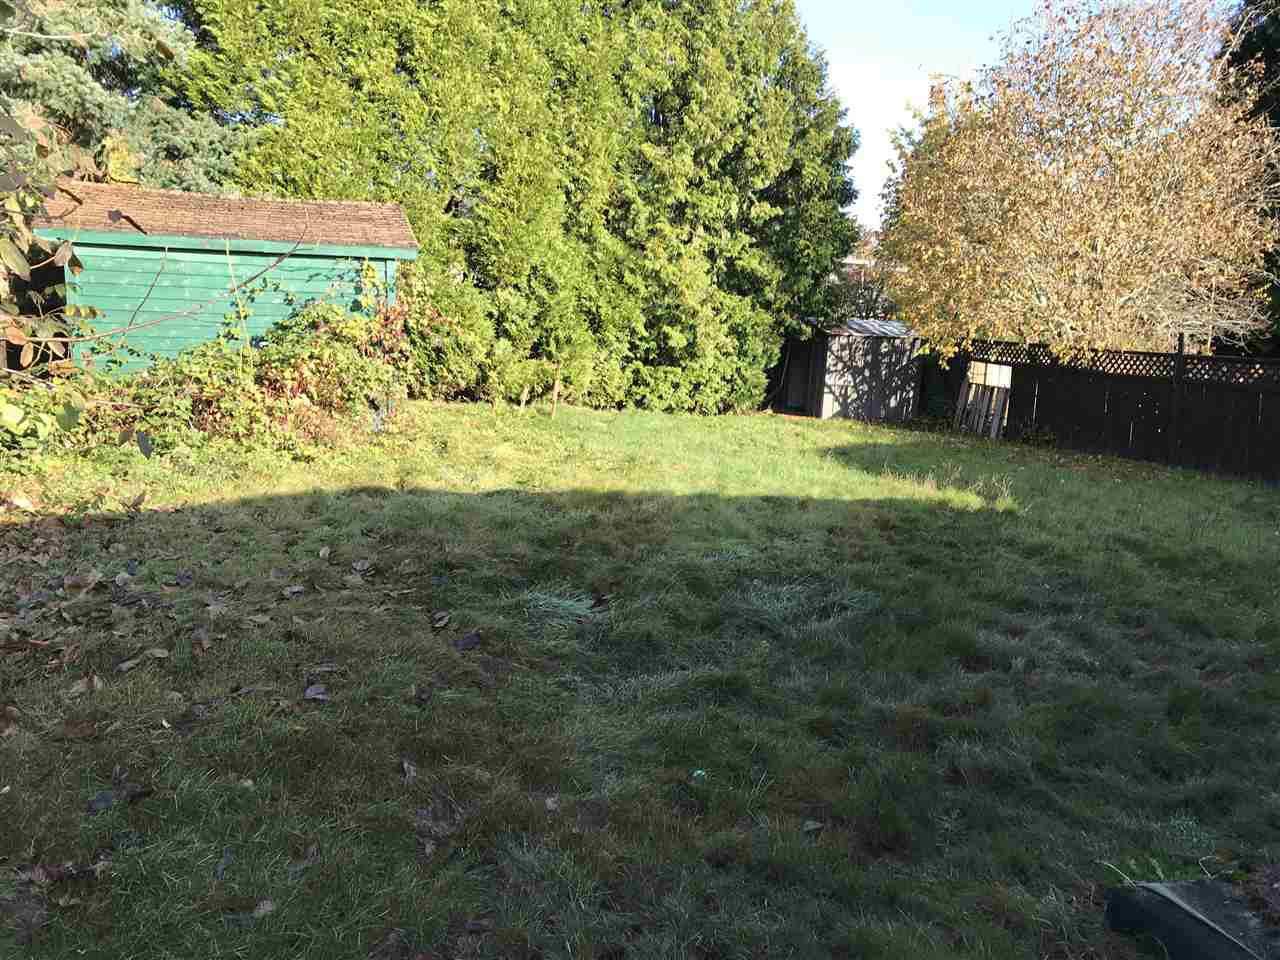 """Photo 3: Photos: 15859 THRIFT Avenue: White Rock House for sale in """"White Rock"""" (South Surrey White Rock)  : MLS®# R2220457"""